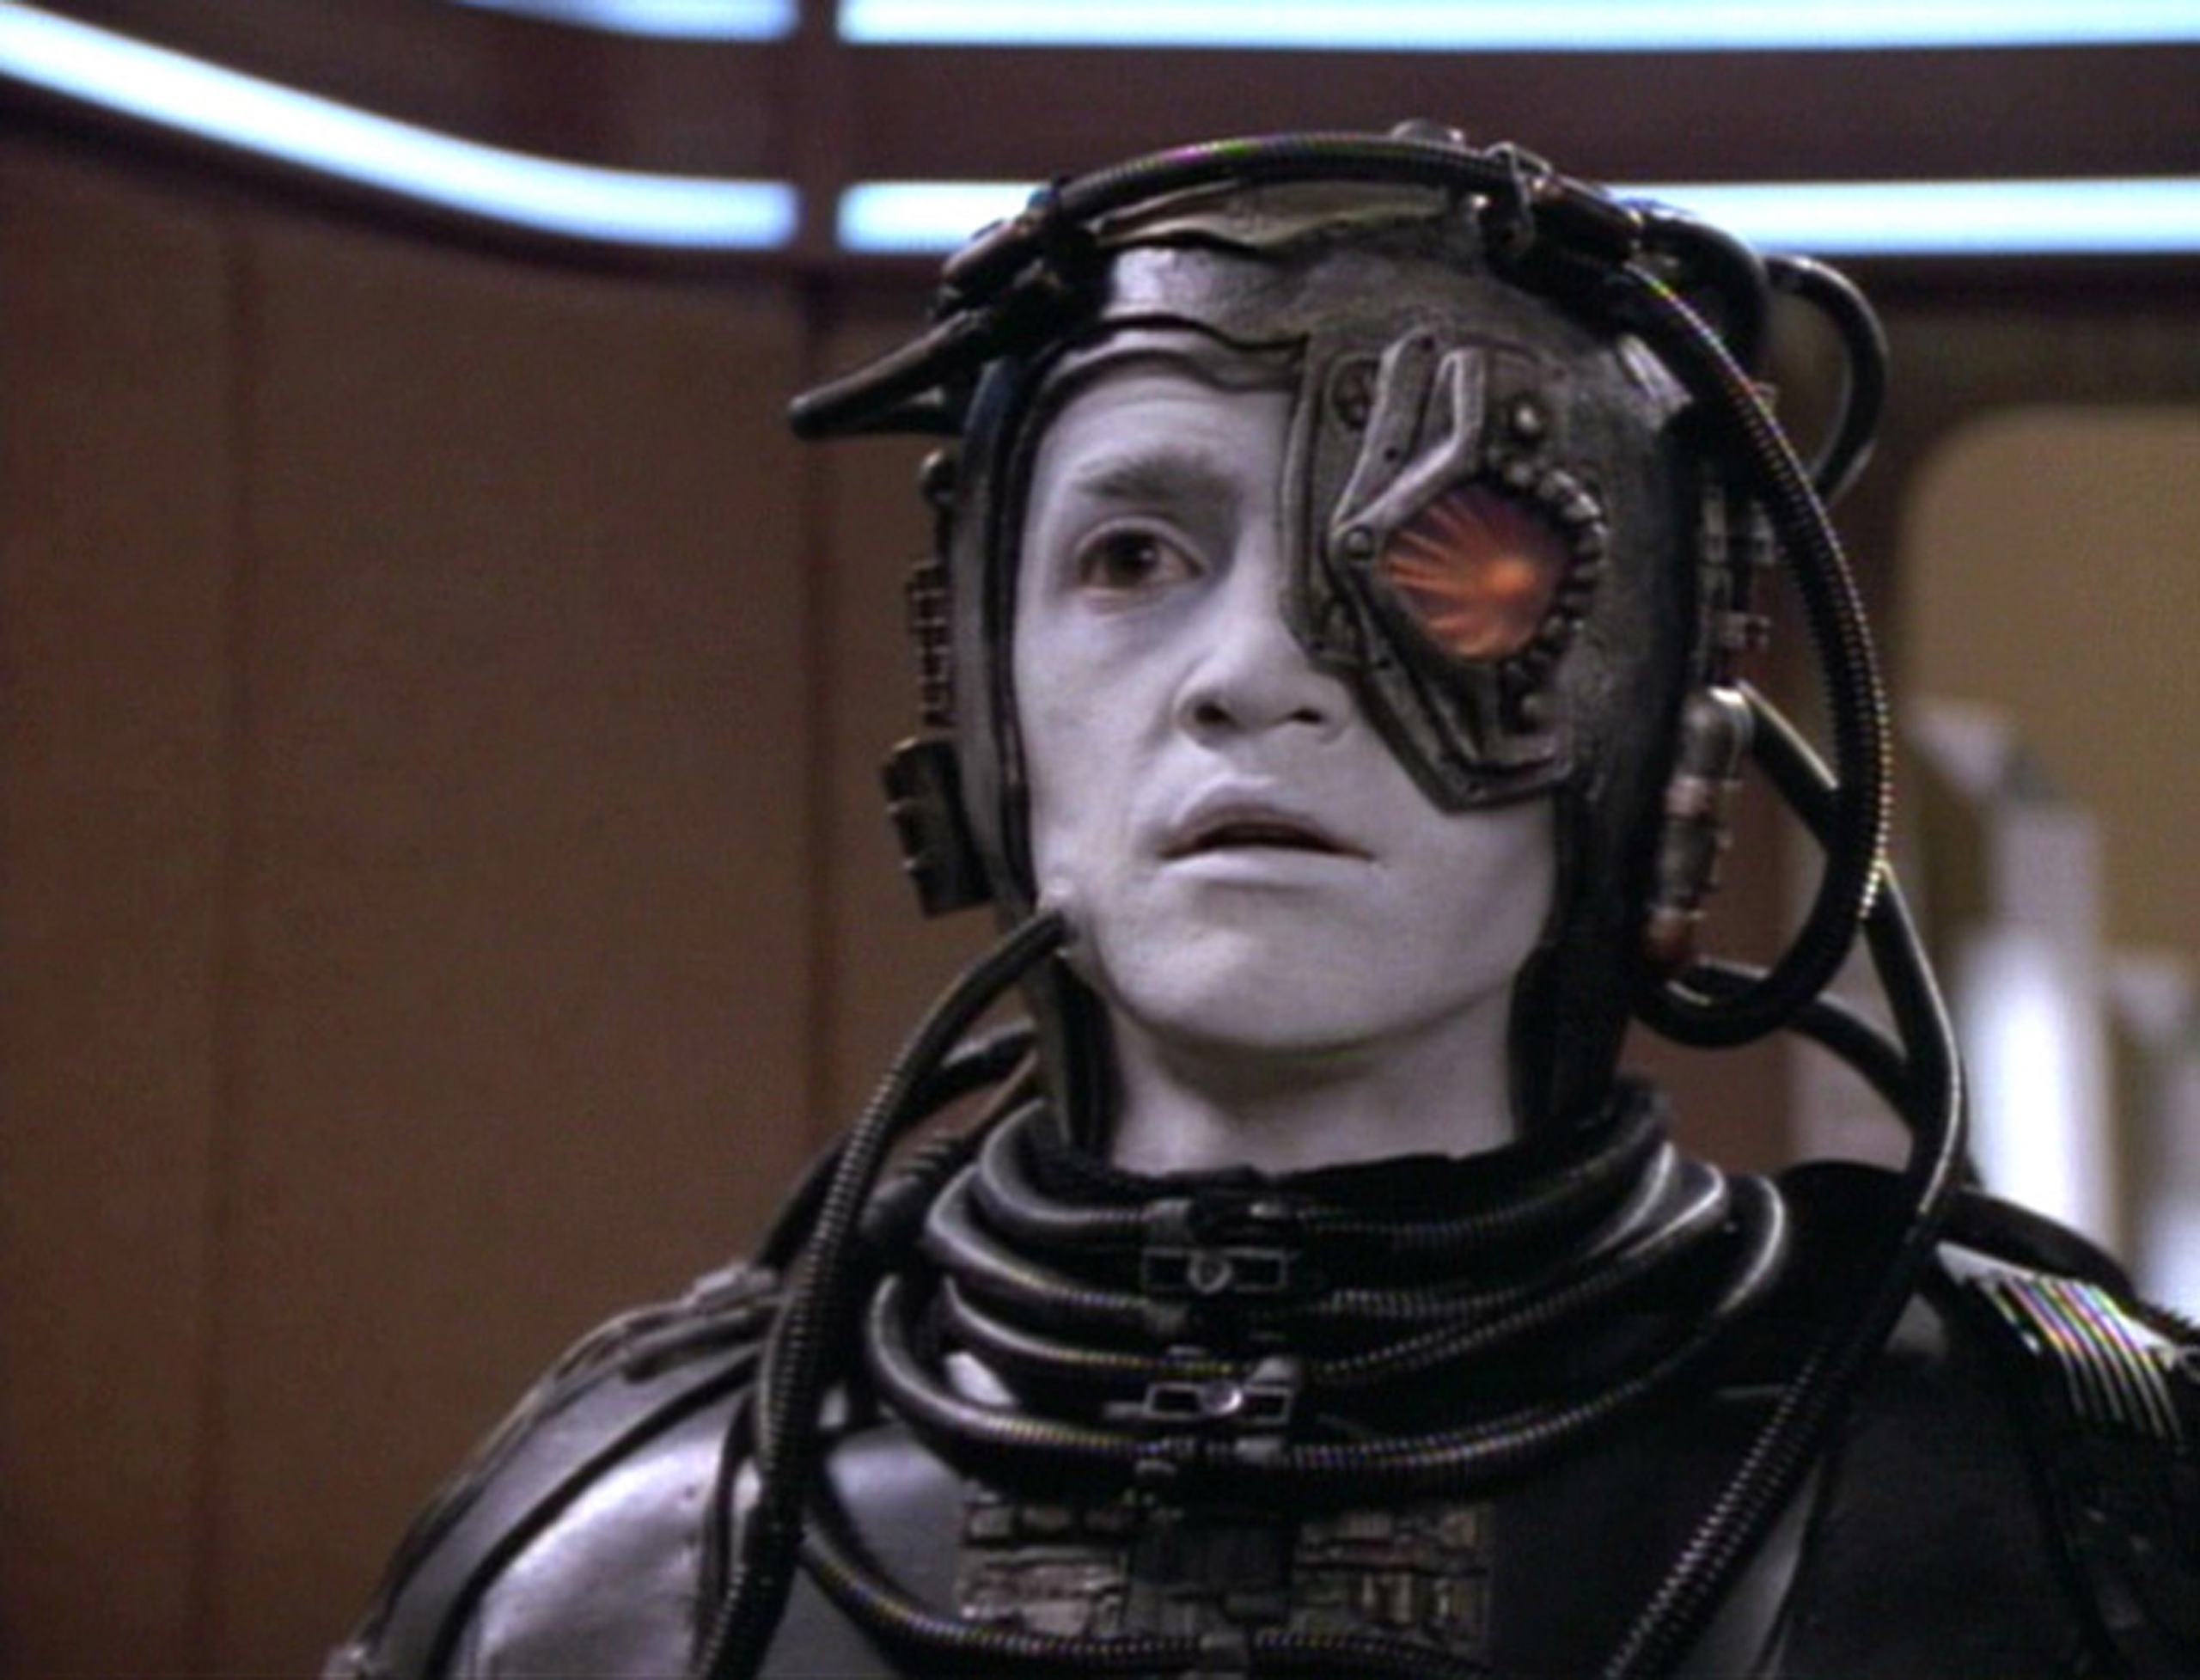 Jonathan Del Arco as Borg, Third of Five, in Star Trek: The Next Generation, May 11, 1992.